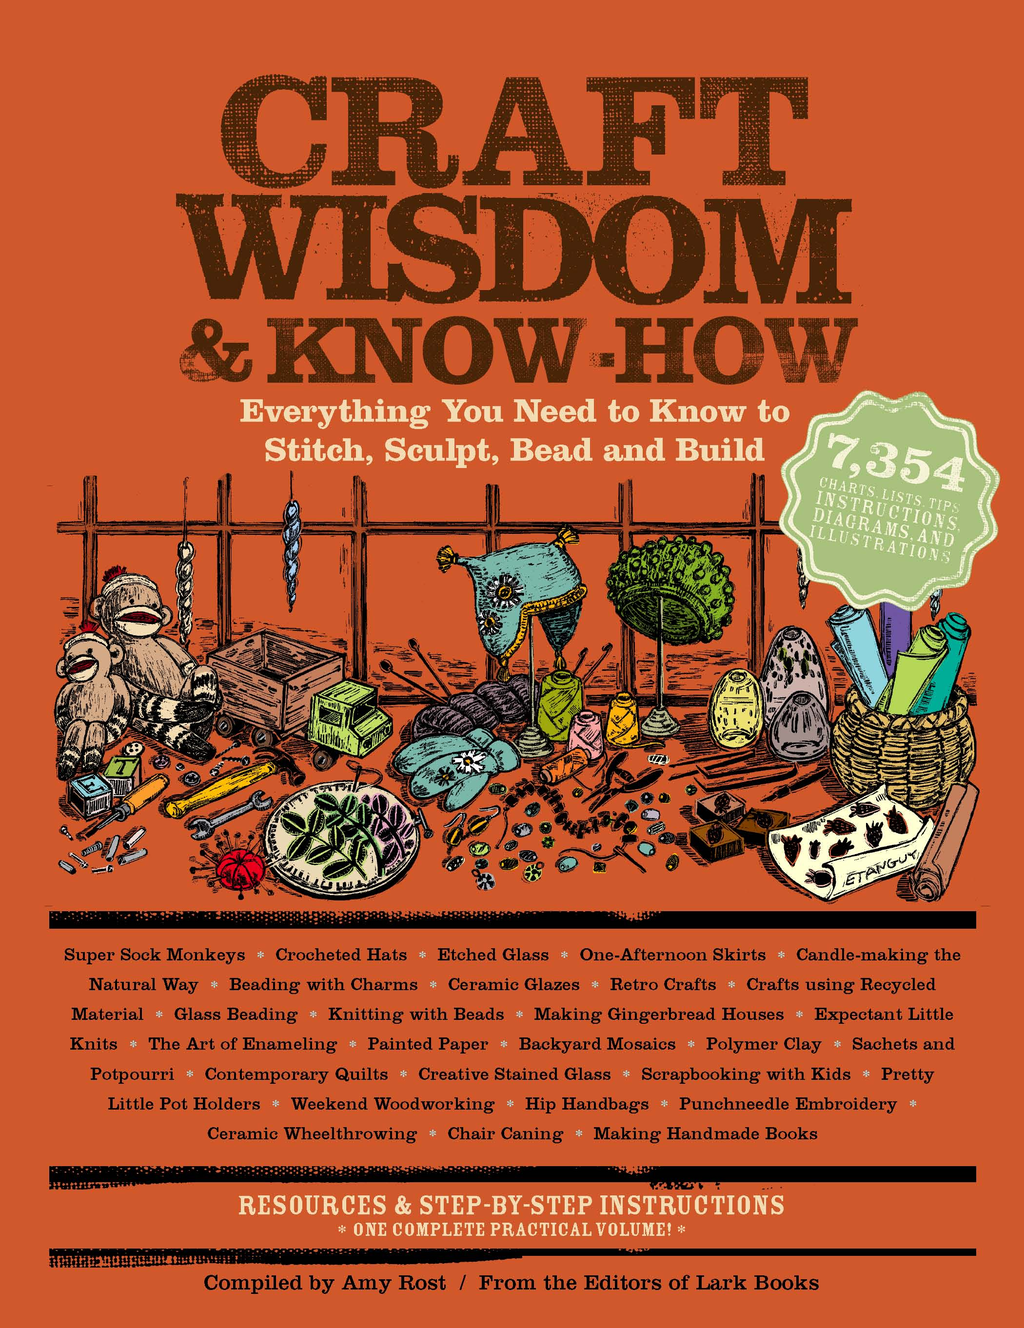 Craft Wisdom & Know-How By: Amy Rost,The Editors of Lark Books